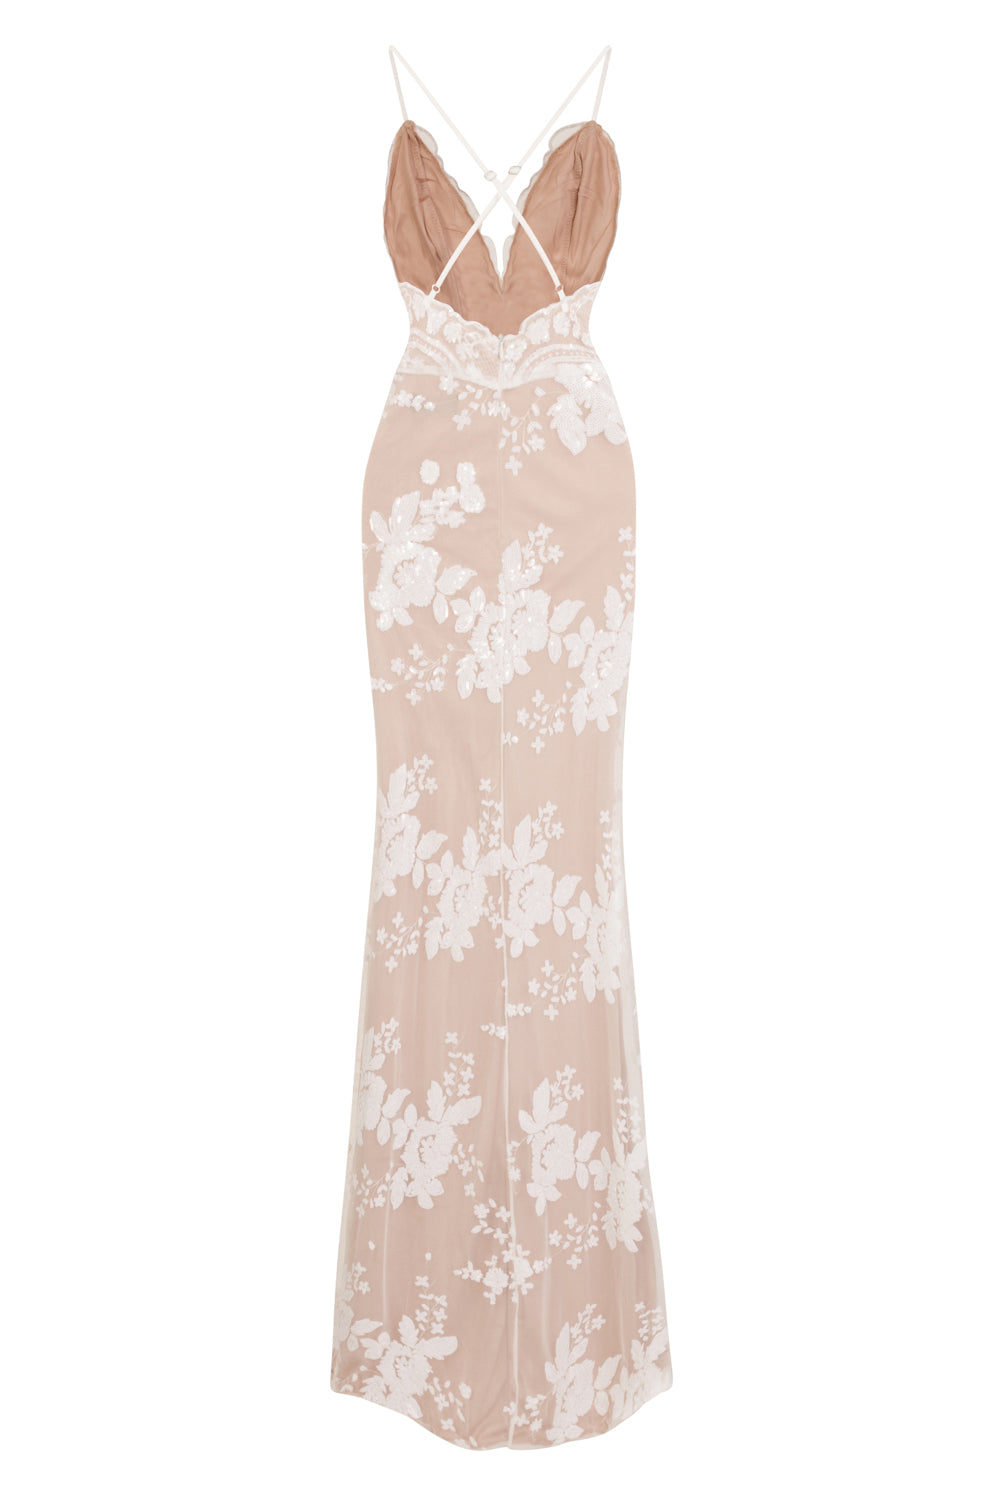 Pure Desire White Plunge Floral Sequin Double Thigh Slit Maxi Dress